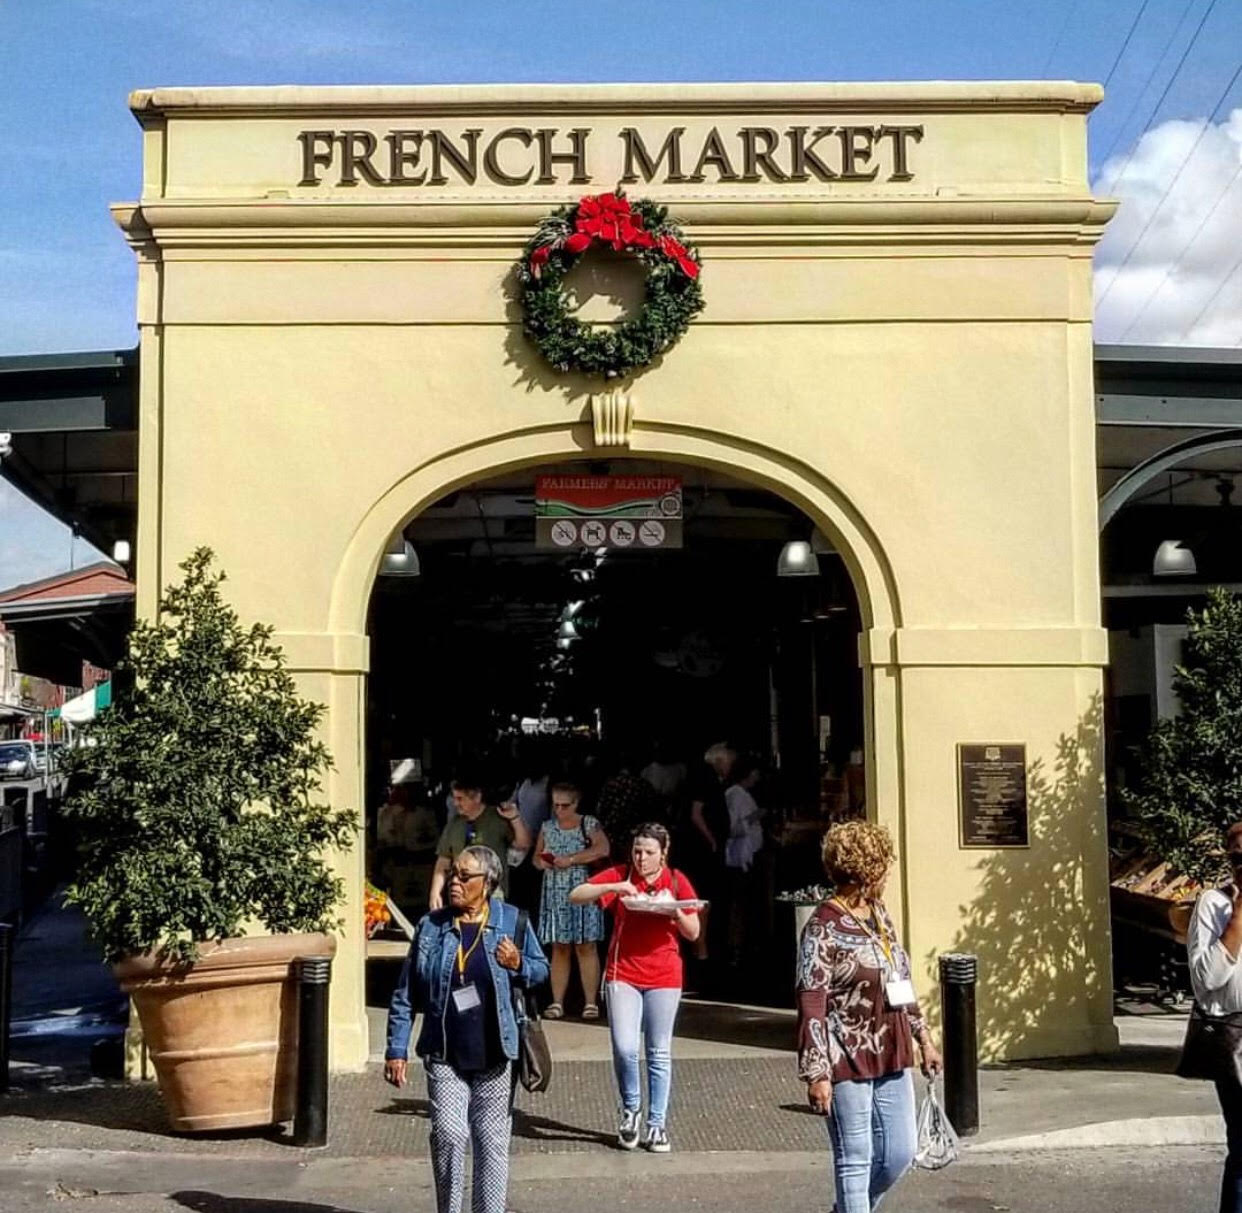 New Orleans's world famous French Market.